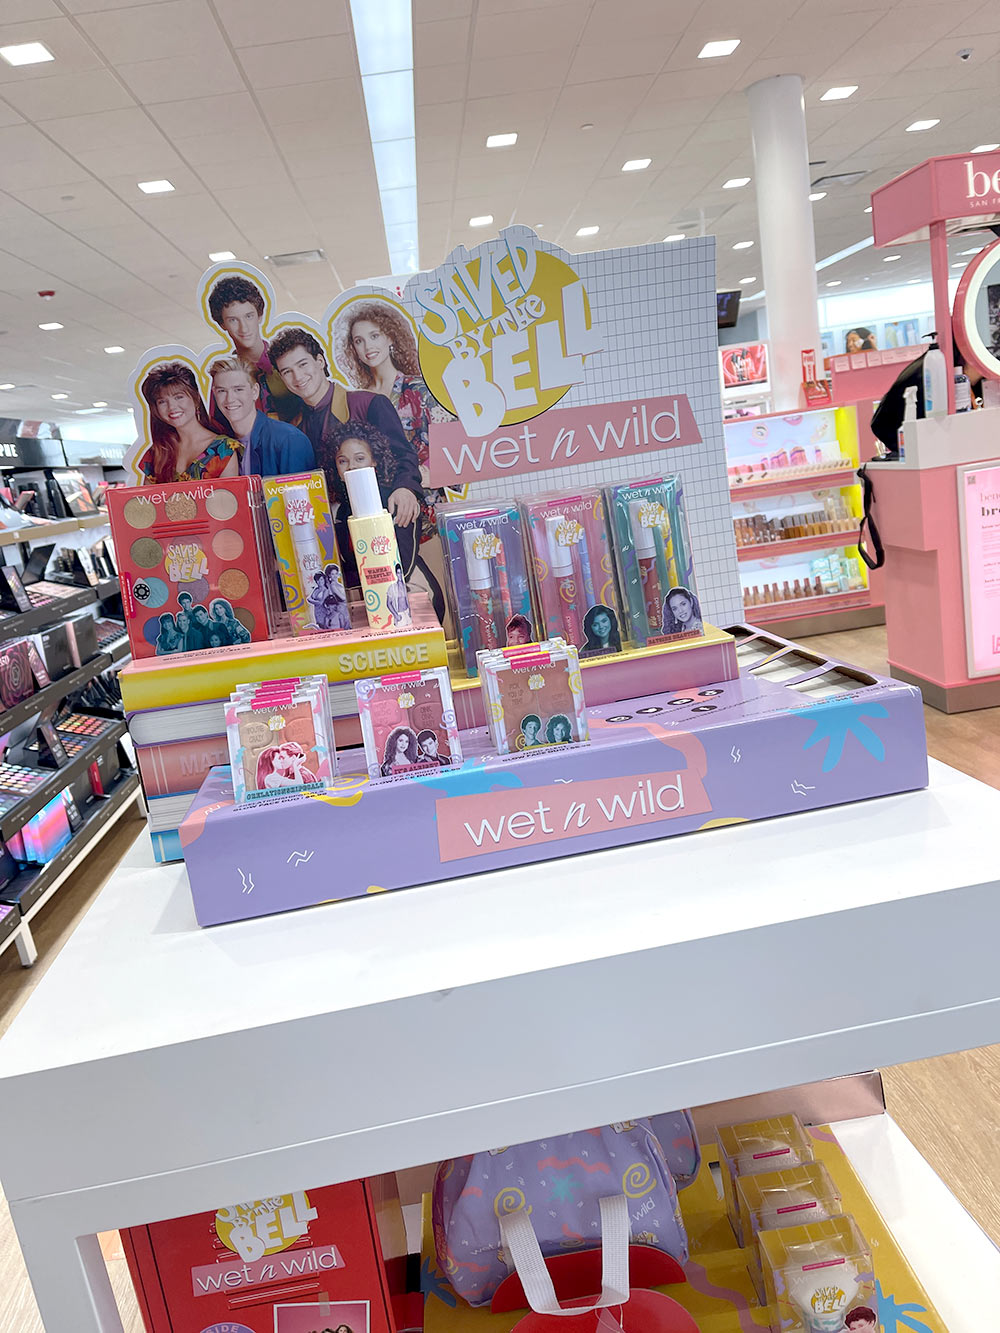 saved by the bell display